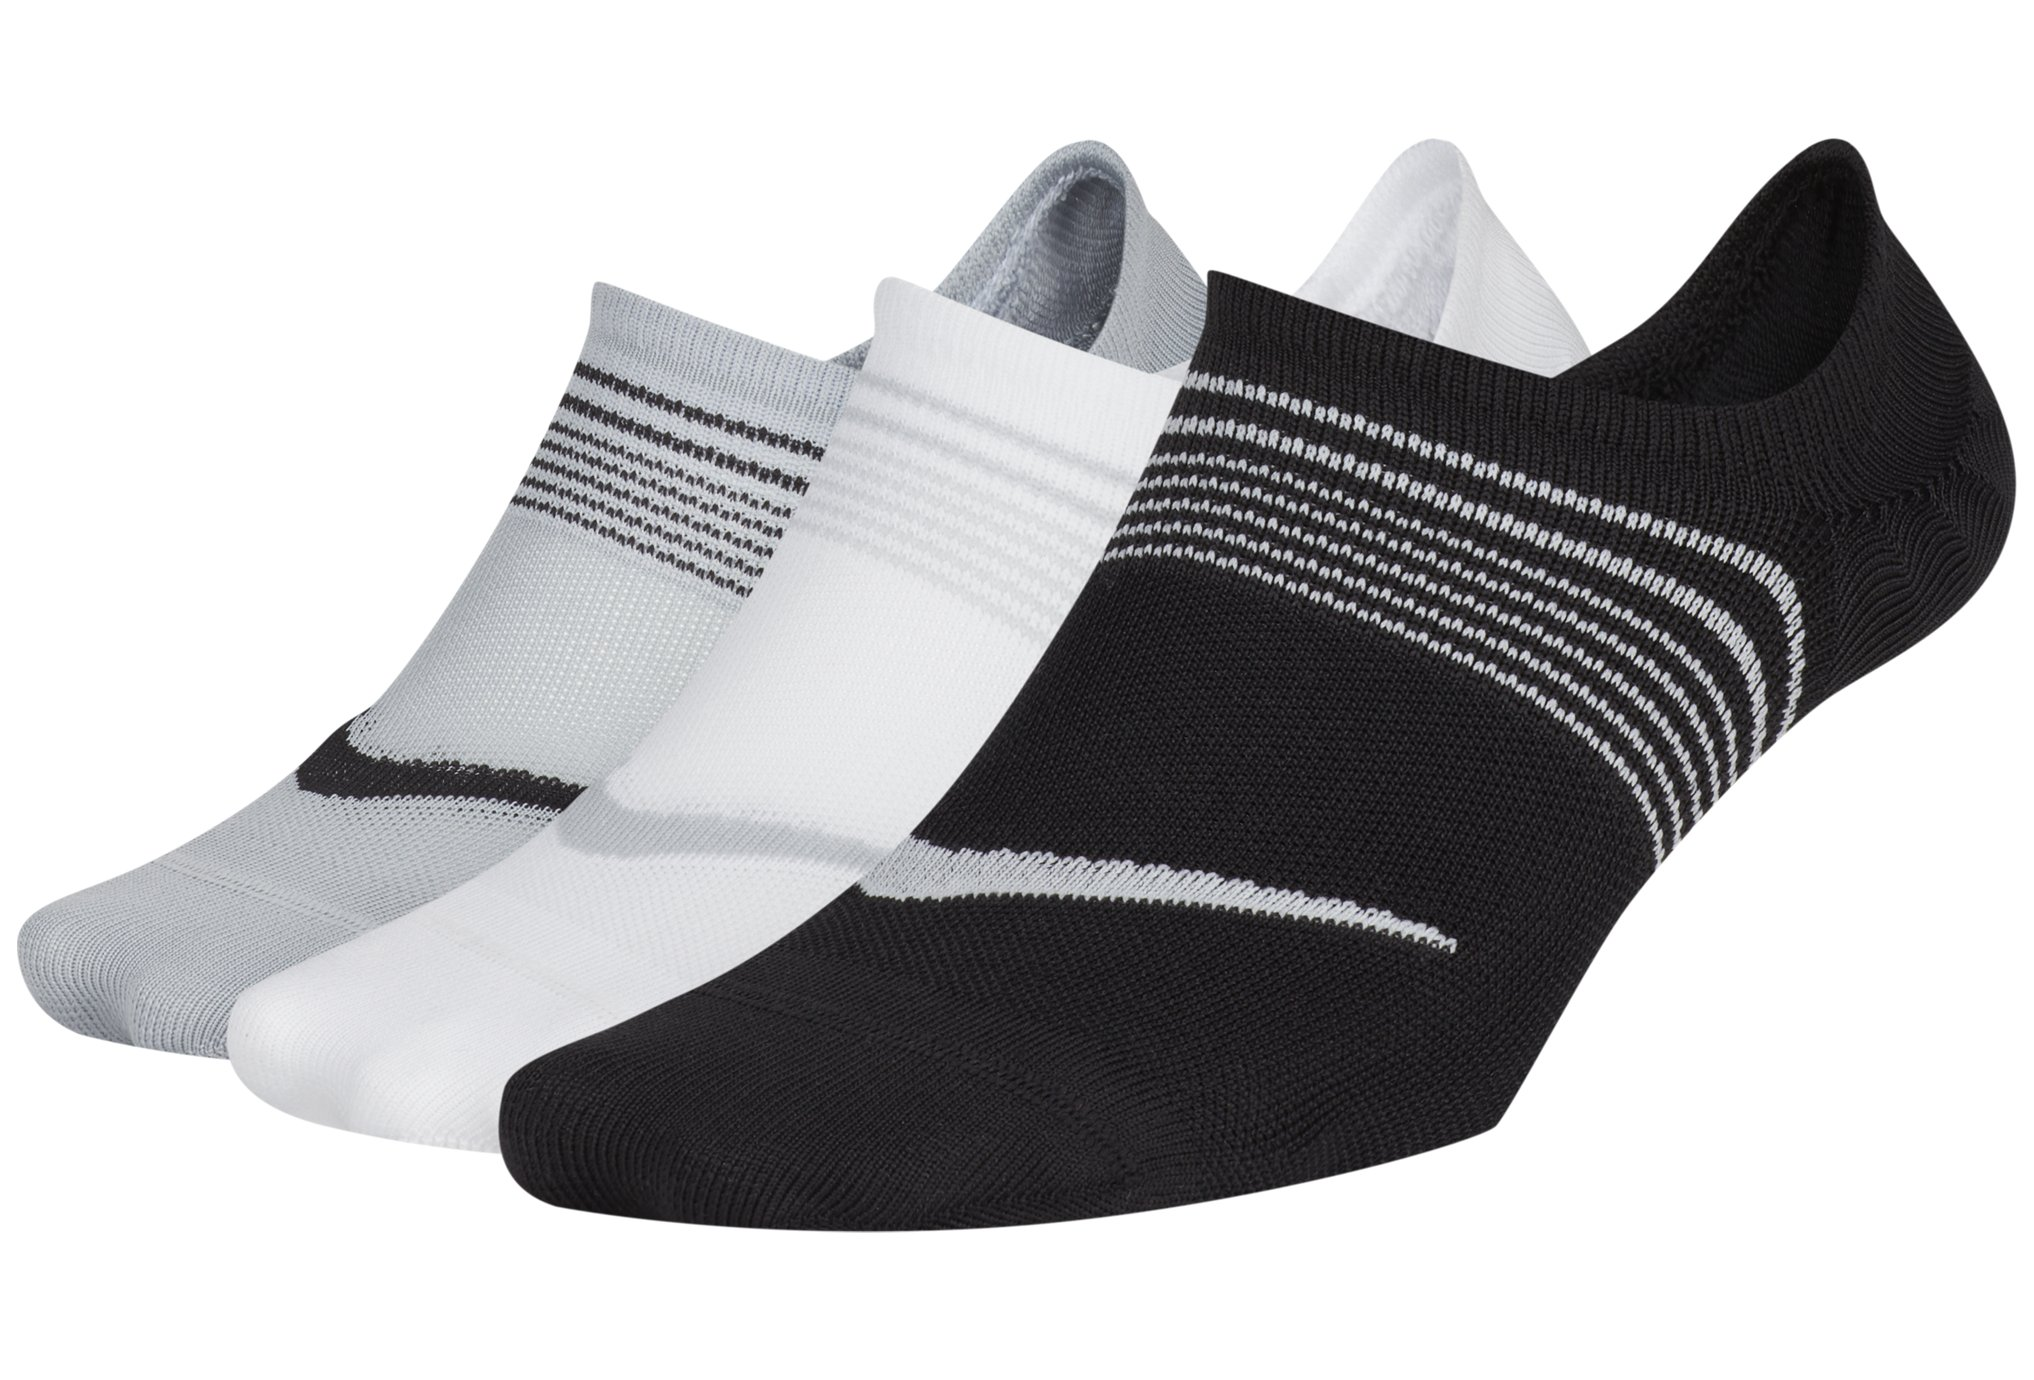 Nike 3 Paires Performance Lightweight W Chaussettes